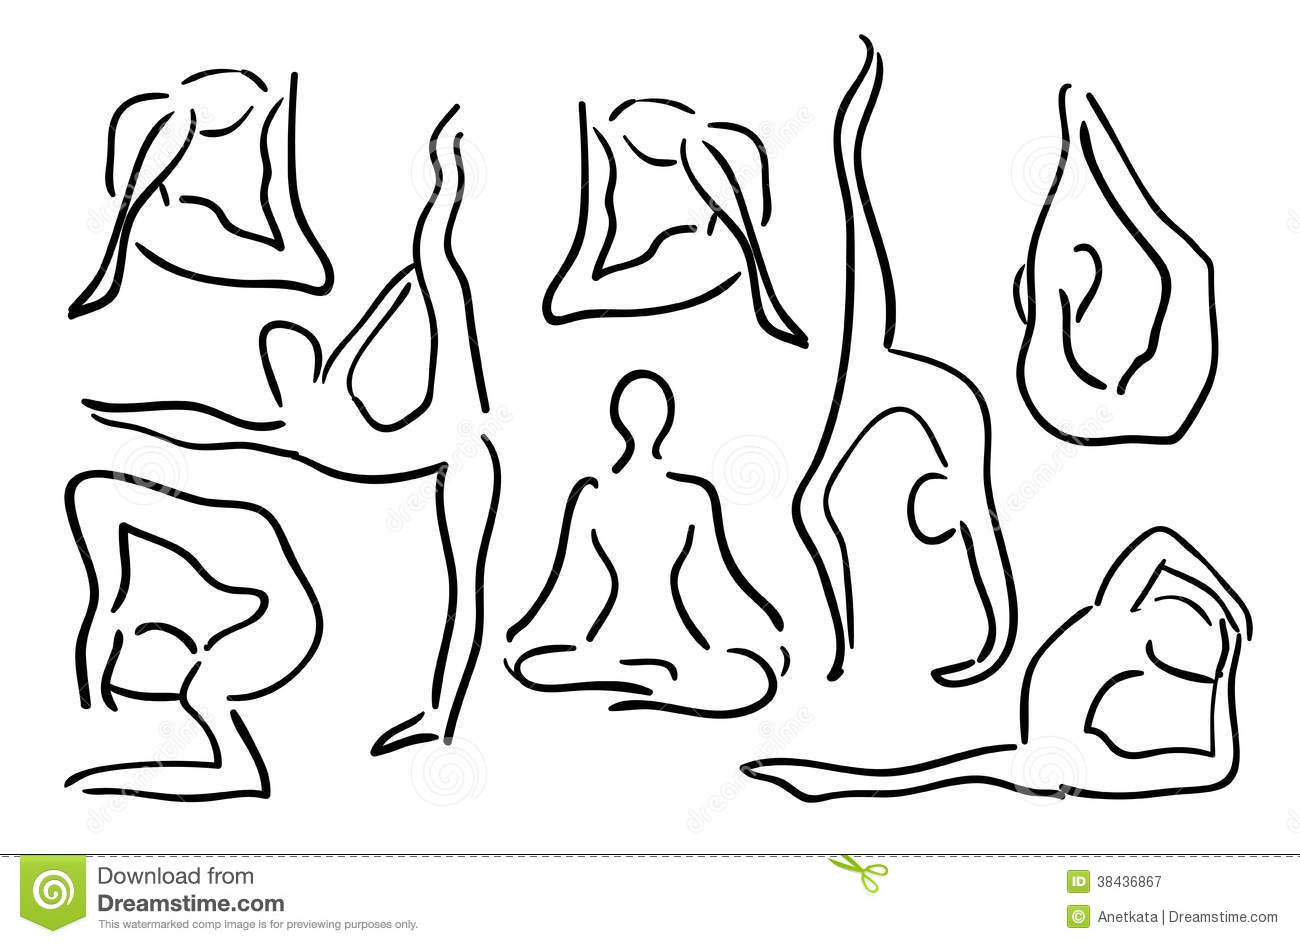 stylized-sketch-yoga-poses-vector-illustration-38436867